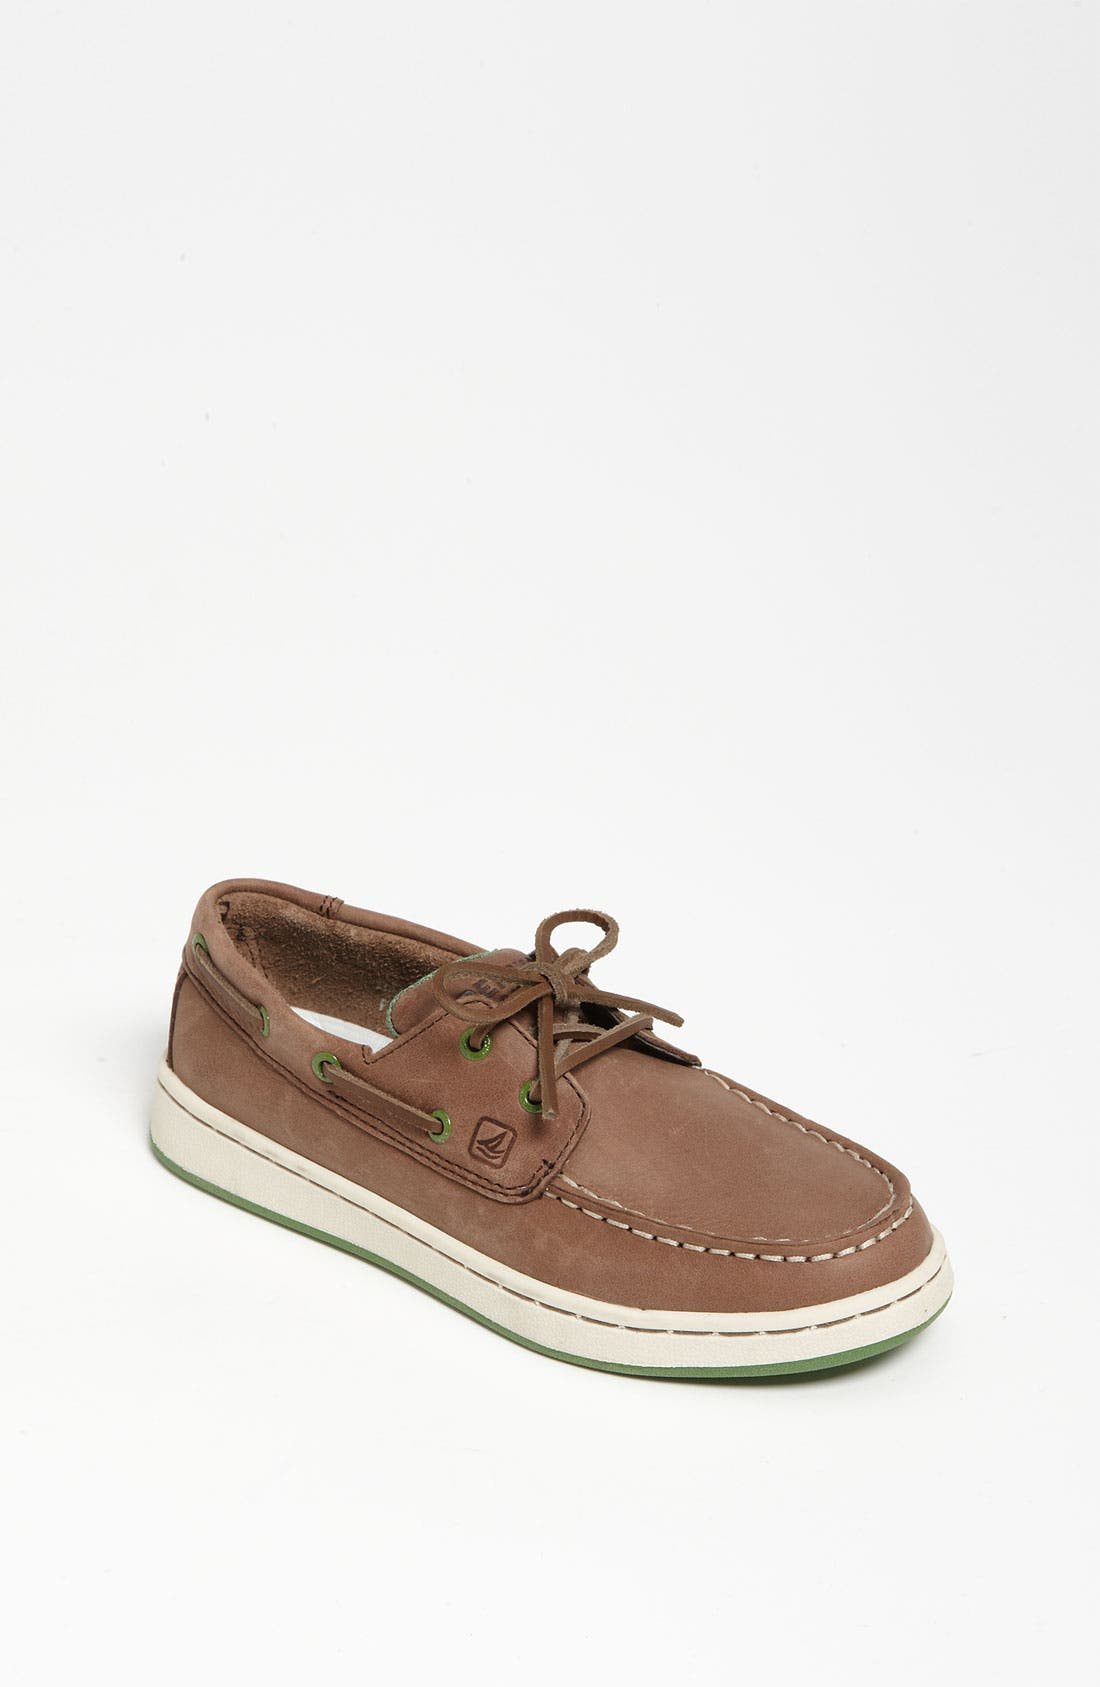 Alternate Image 1 Selected - Sperry Top-Sider® Kids 'Cup 2 Eye' Boat Shoe (Little Kid & Big Kid)